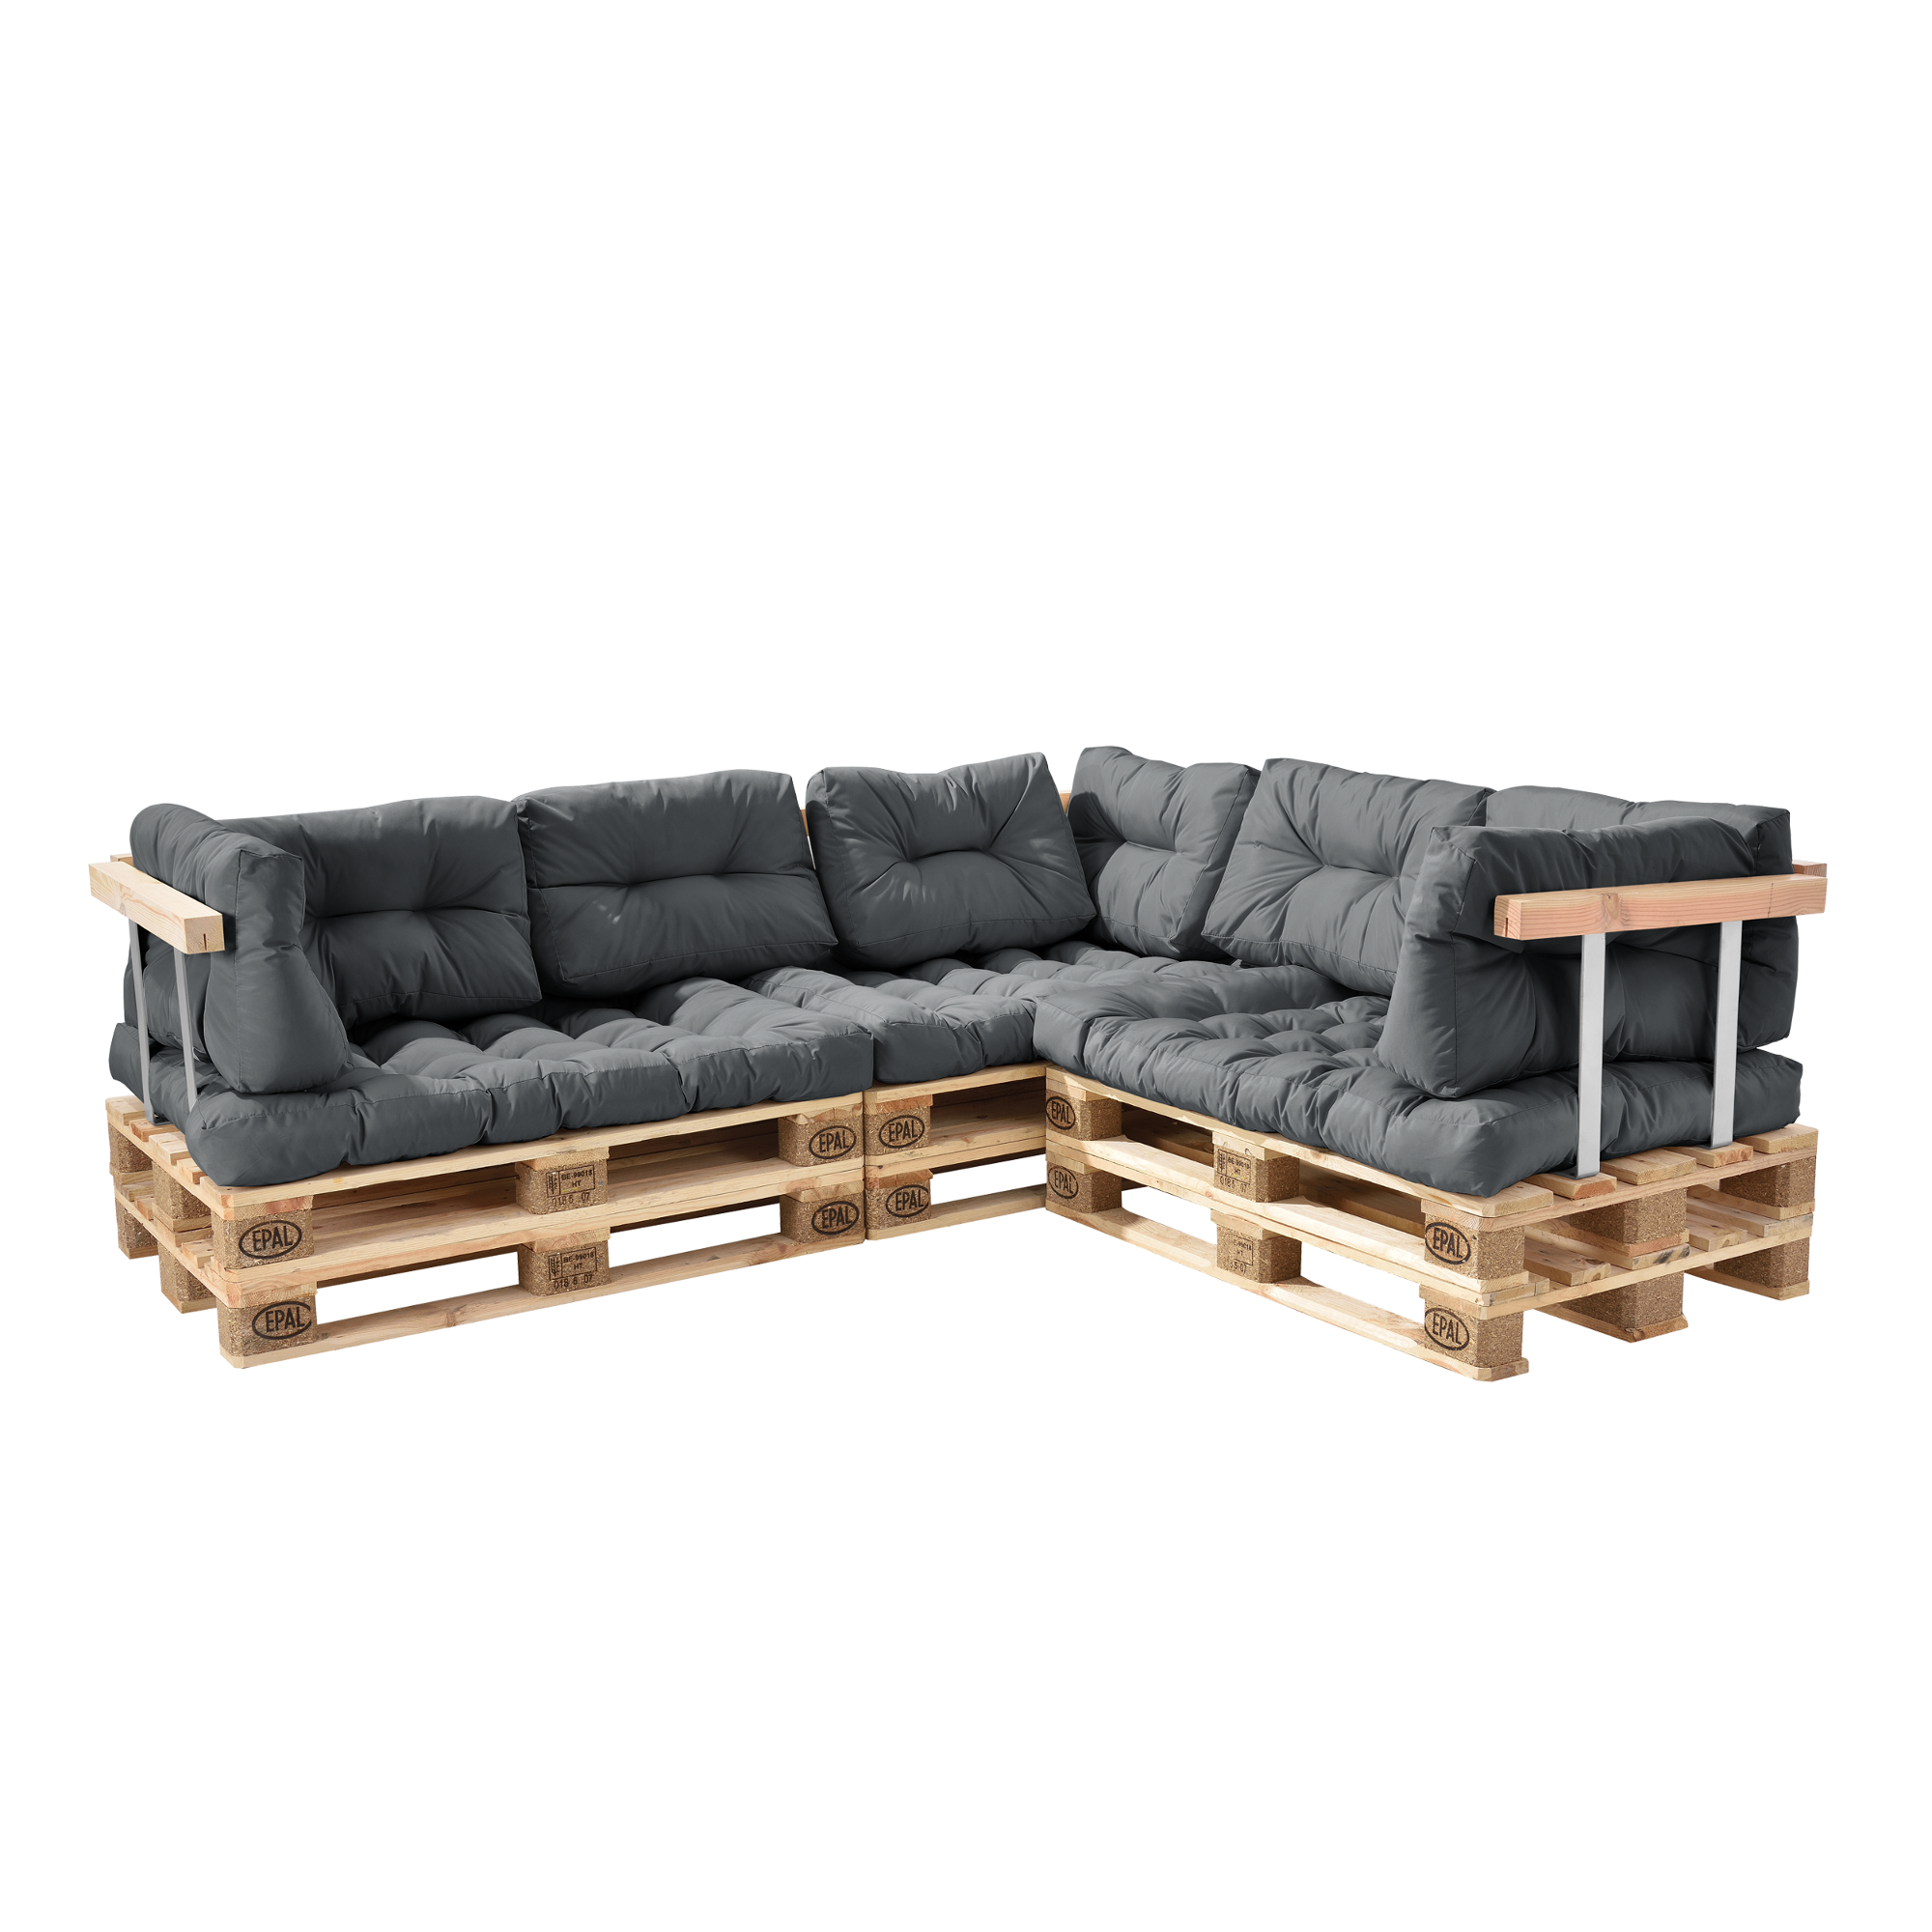 Euro pallet sofa 11 x seat back rest cushion pad pillow for Couch 700 euro